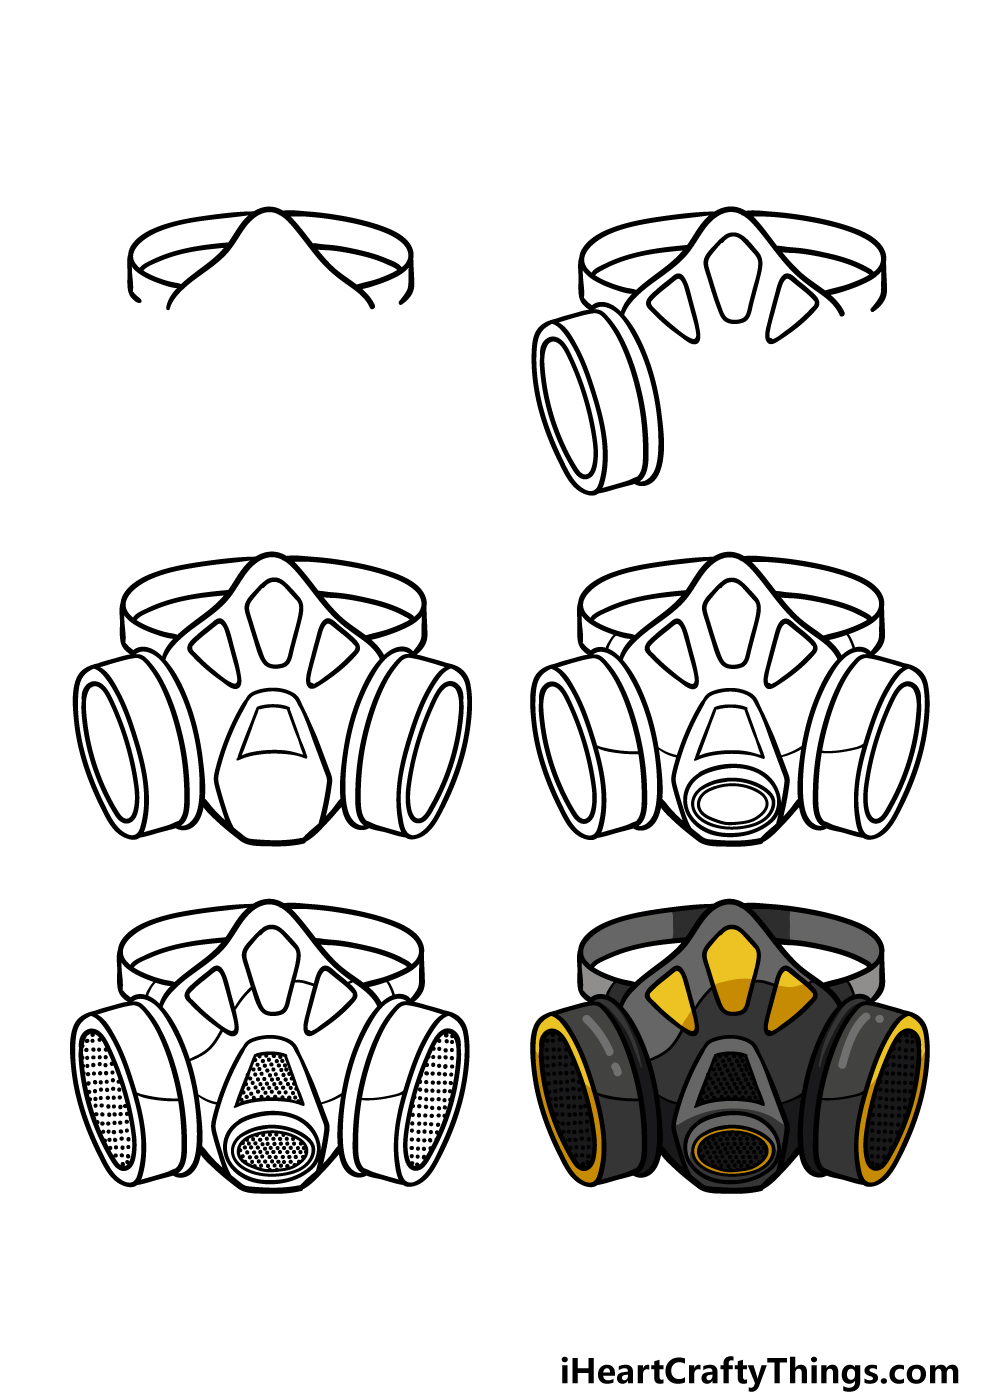 How To Draw A Gas Mask in 6 steps